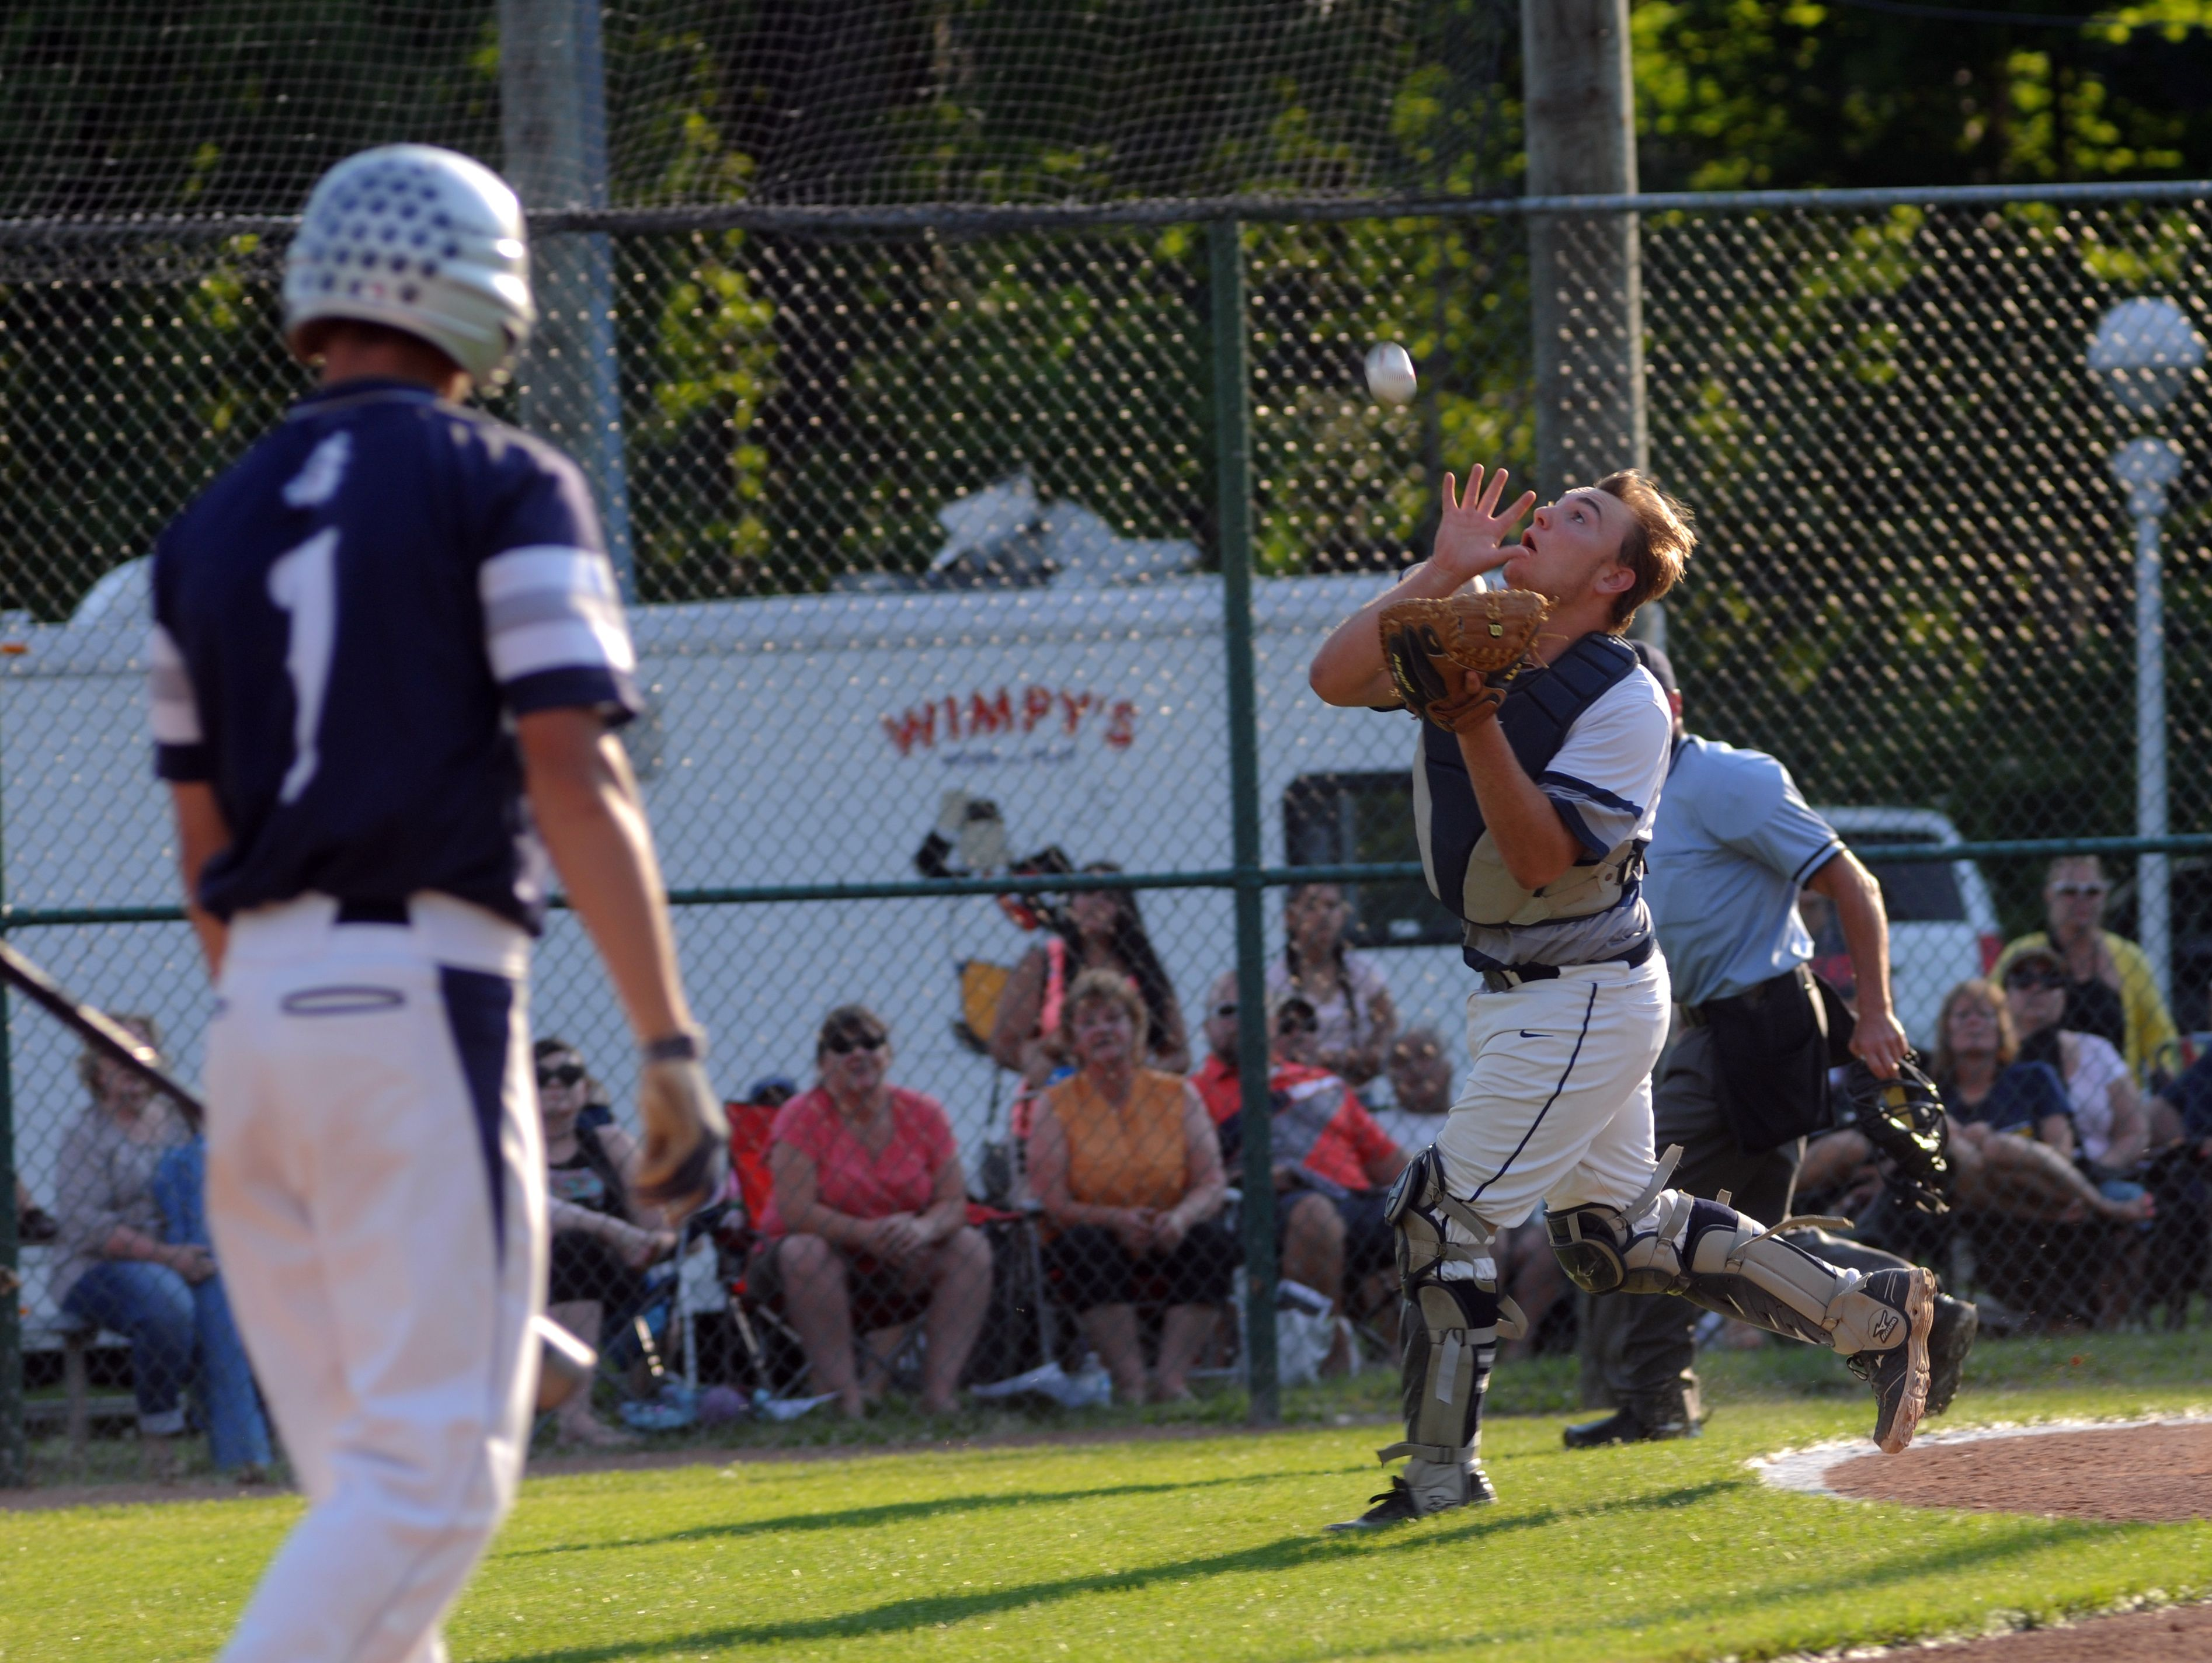 Marysville catcher Jacob Woodward catches a pop fly Monday, June 19, during the SC4 Blue Water Area All-Star Game at Sanborn Park.